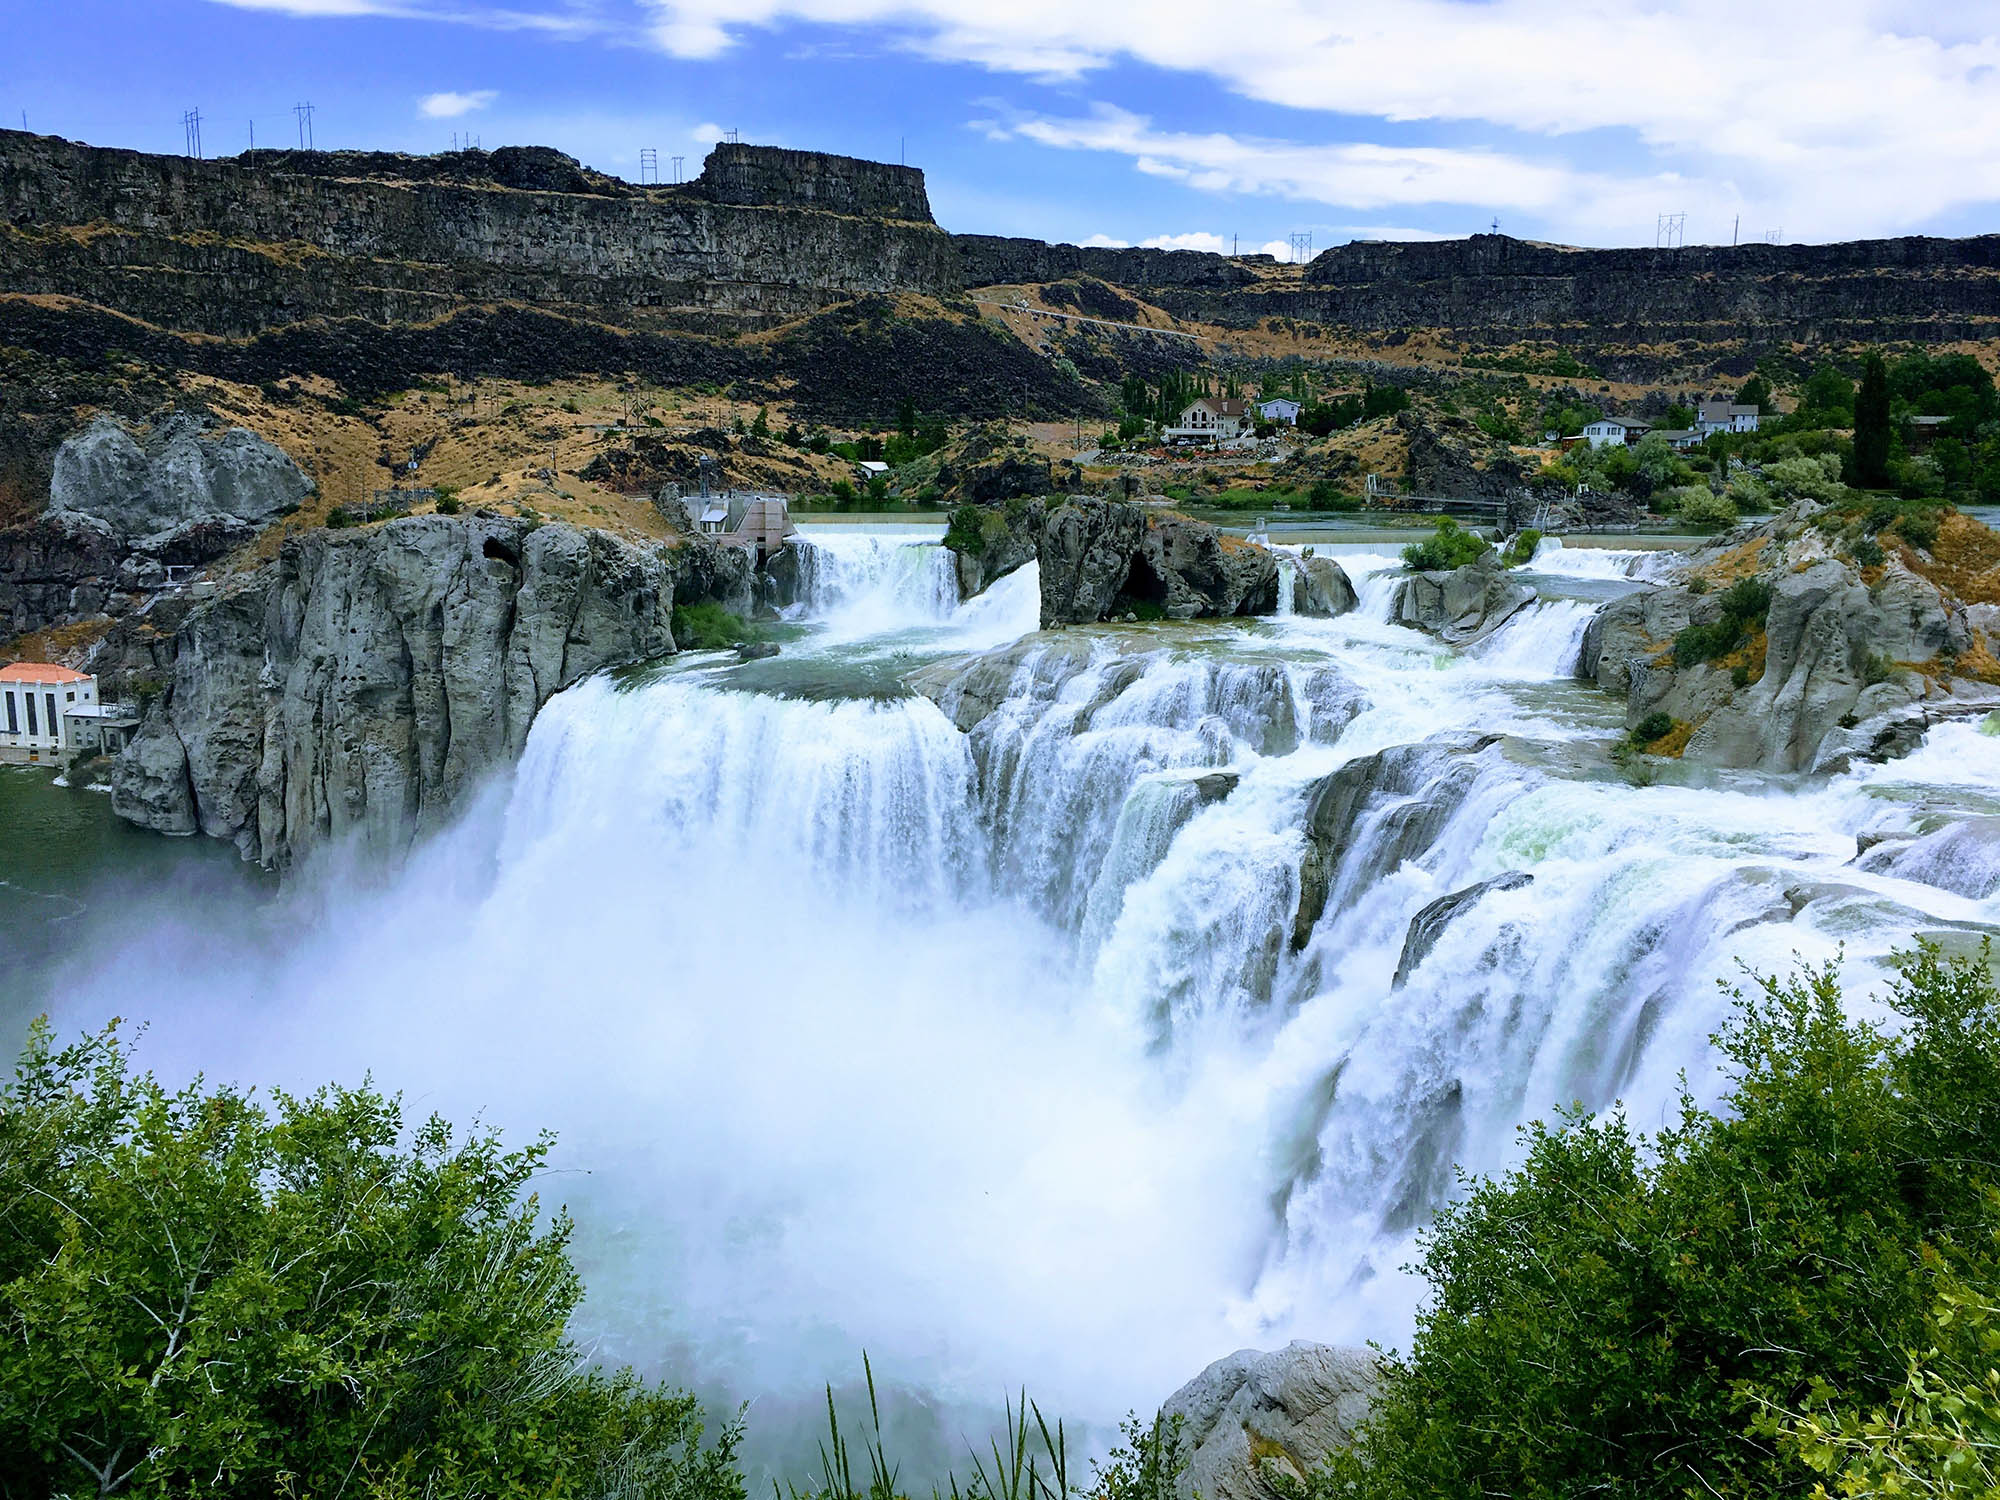 Cascade over rugged stone cliffs in Idaho